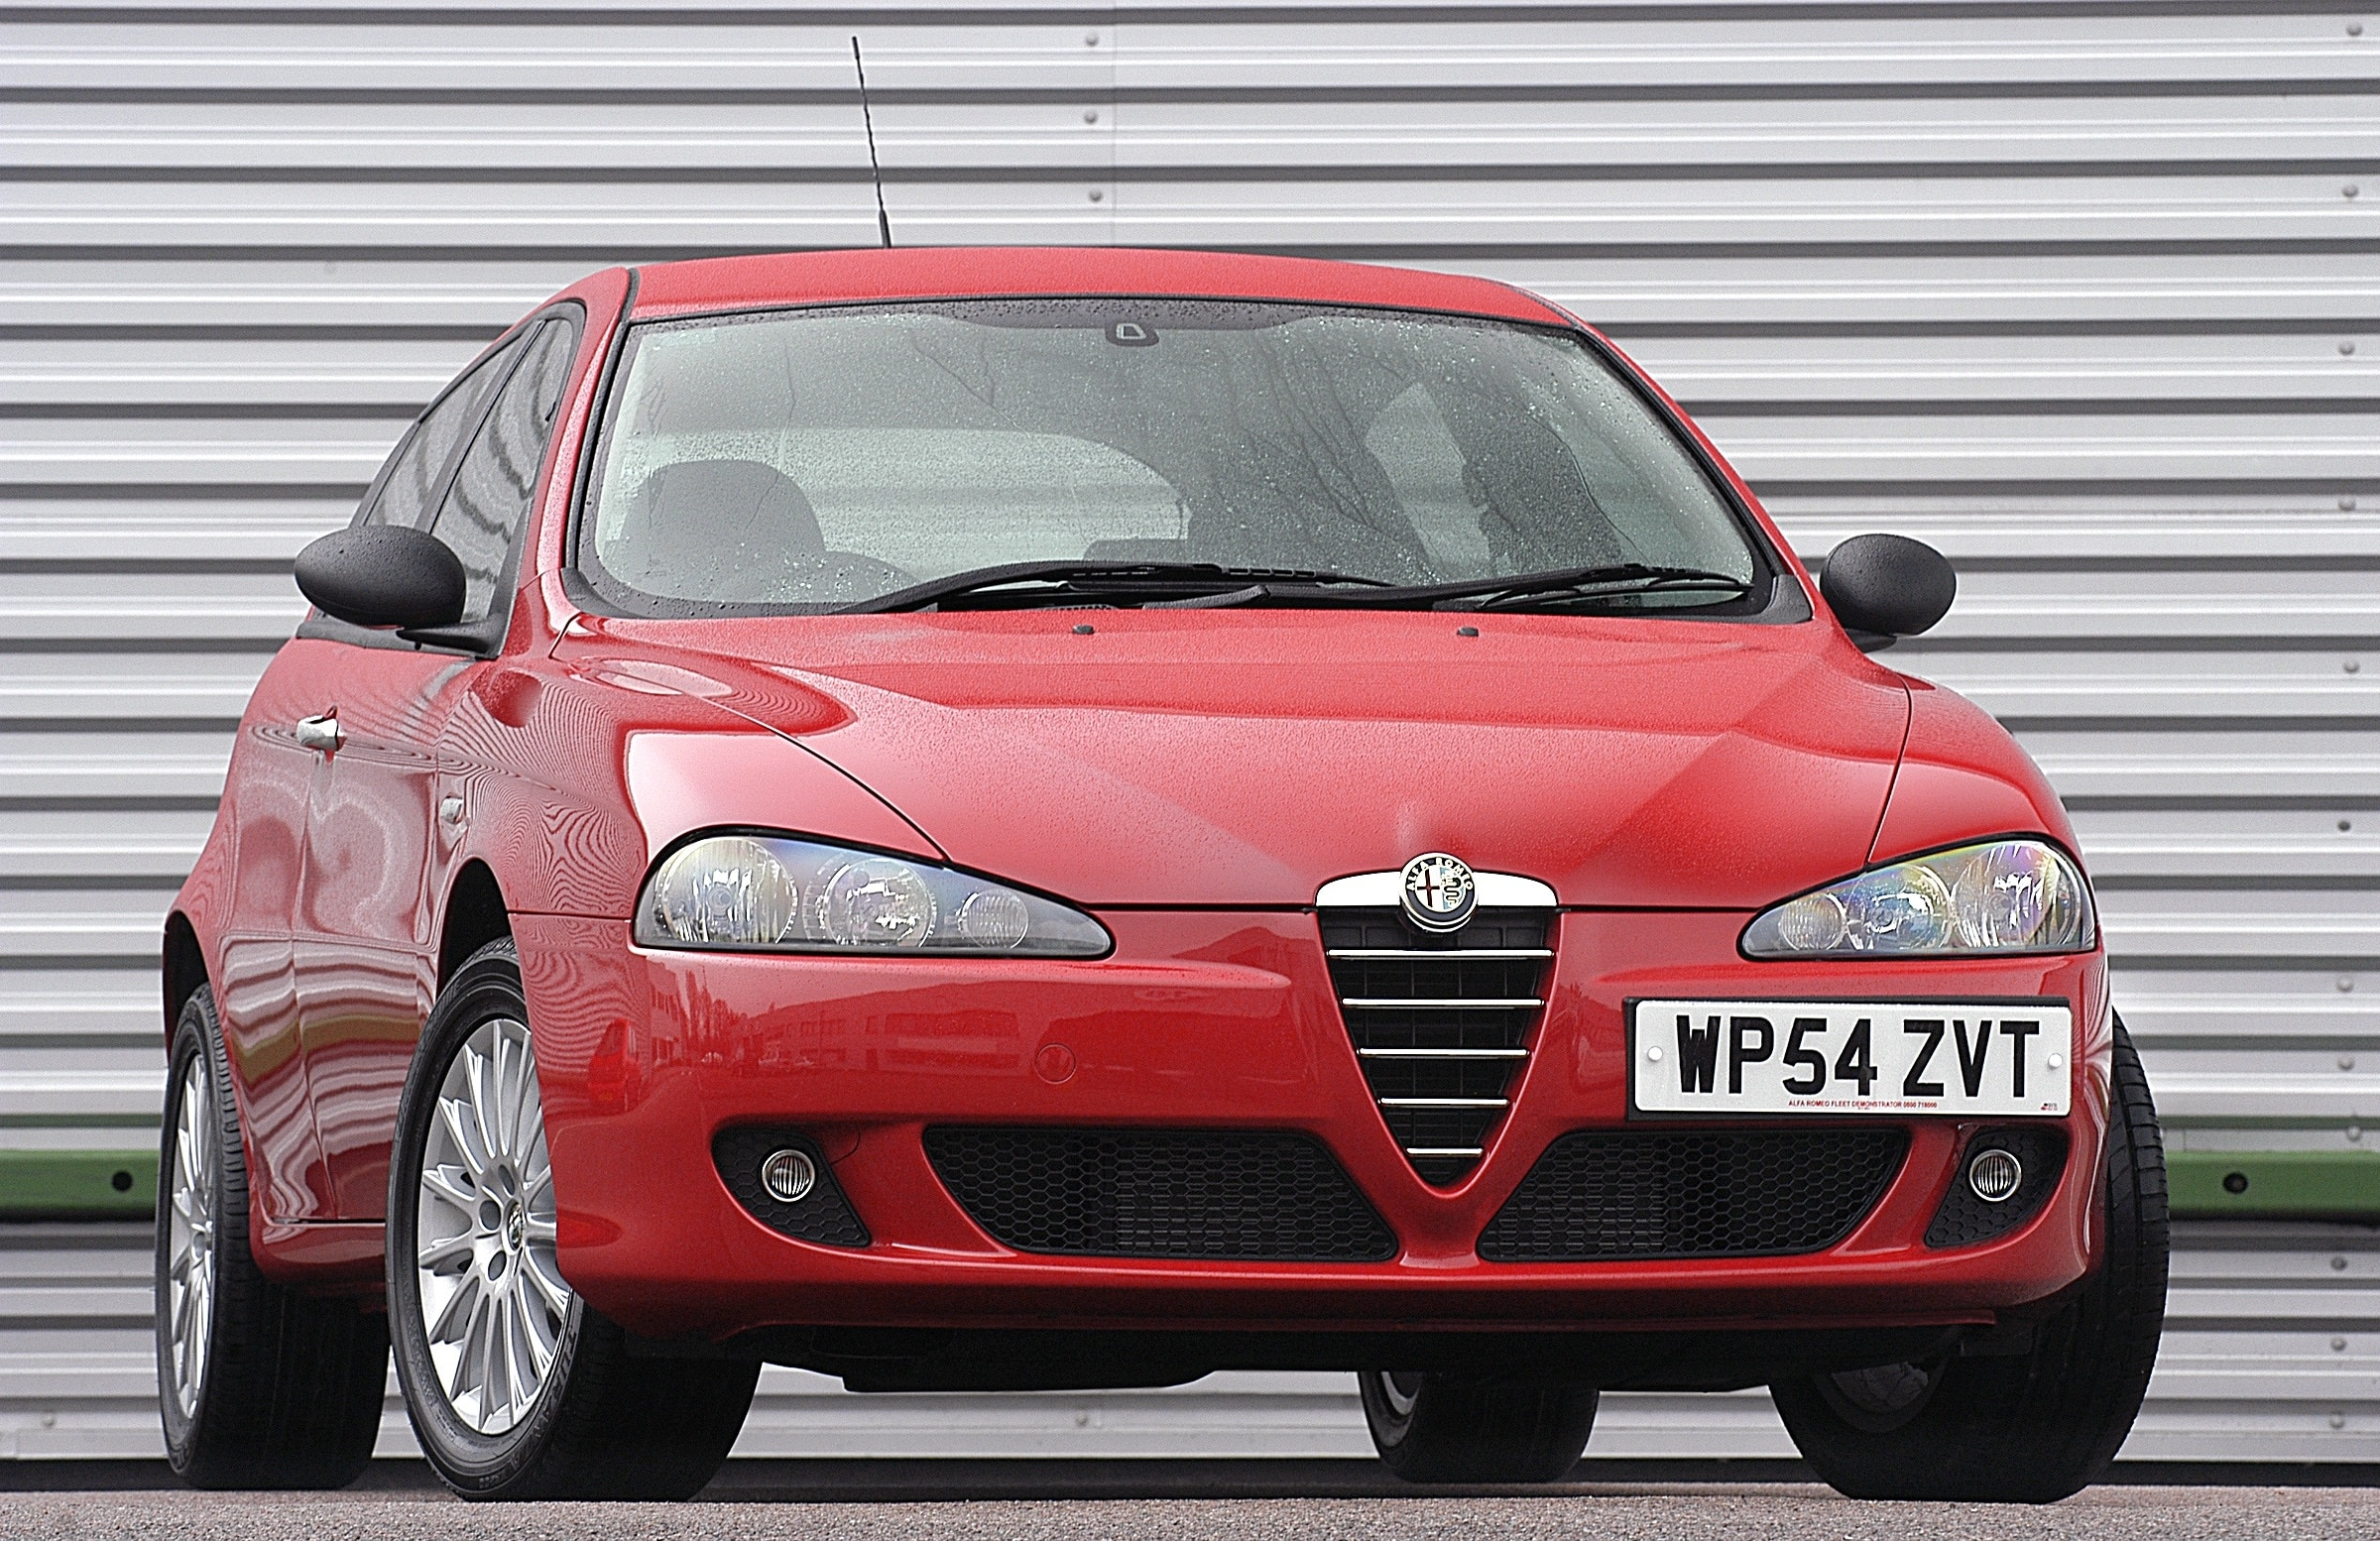 alfa romeo 147, alfa romeo, alfa, 147, alfa 147, lusso, gtv, twin spark, italian, italian car, hatchback, classic car, retro car, motoring, automotive, car, cars, pretty car,